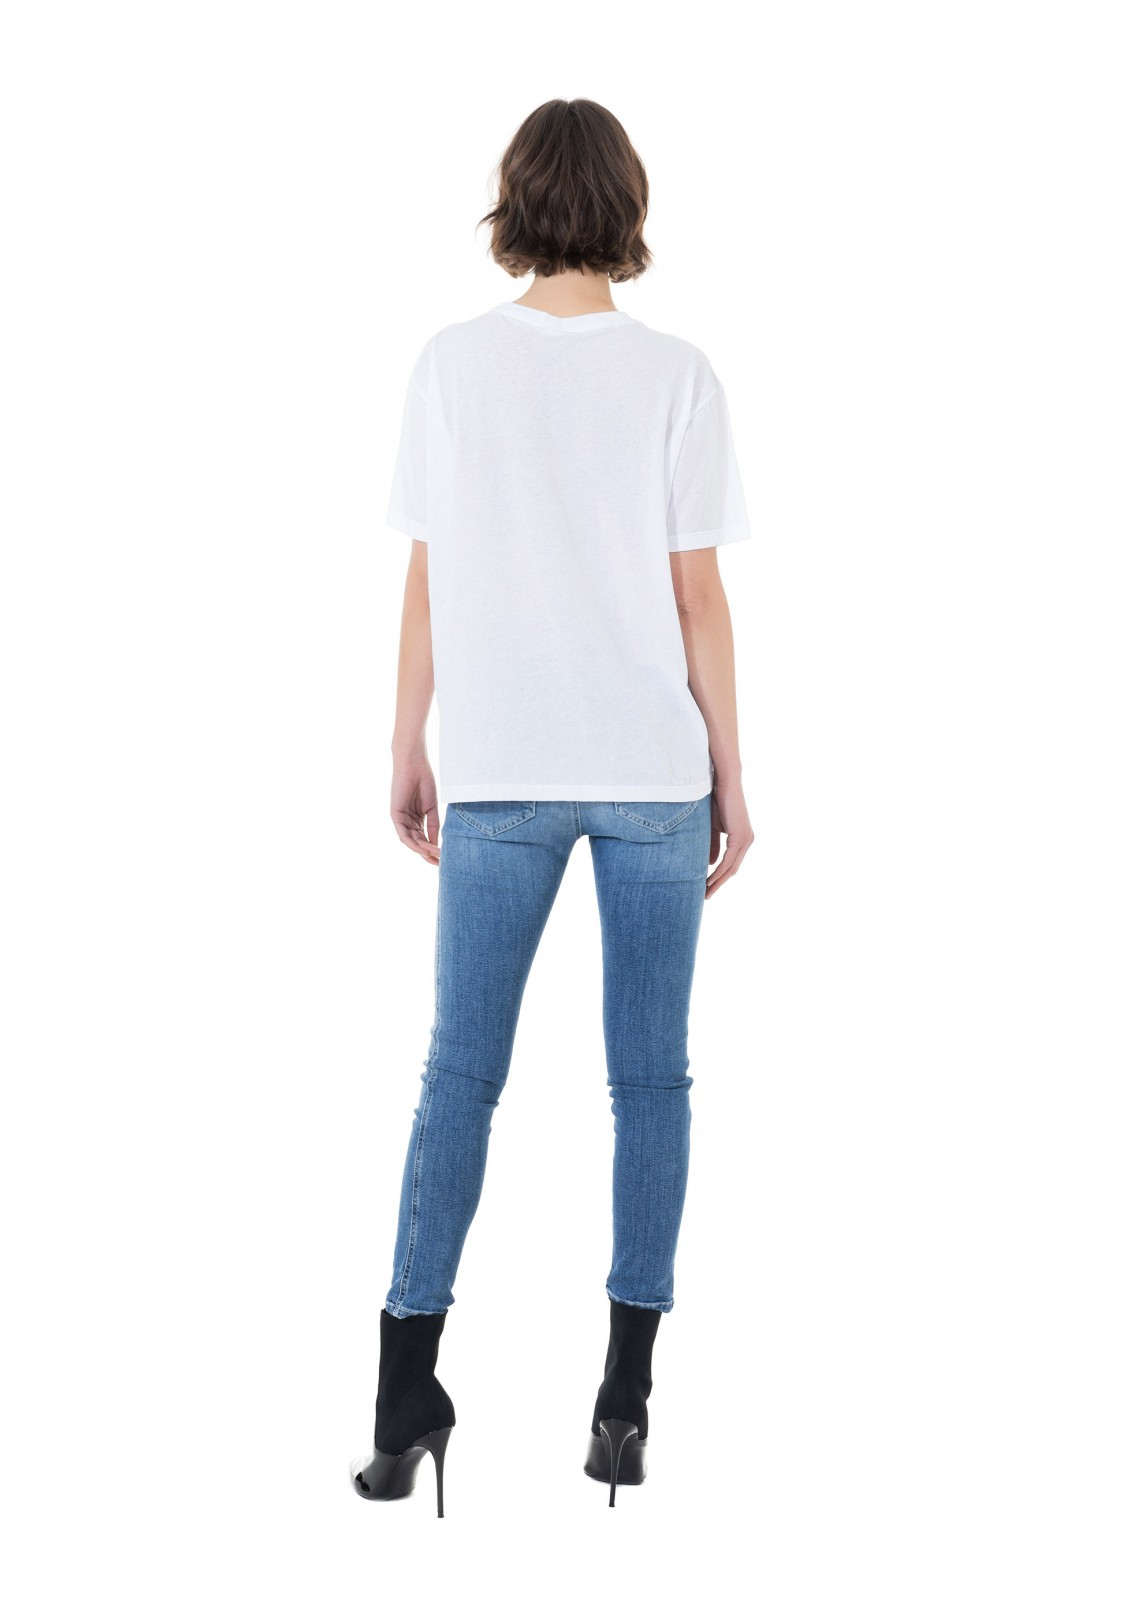 T-SHIRT - GBD4723 - GAELLE PARIS